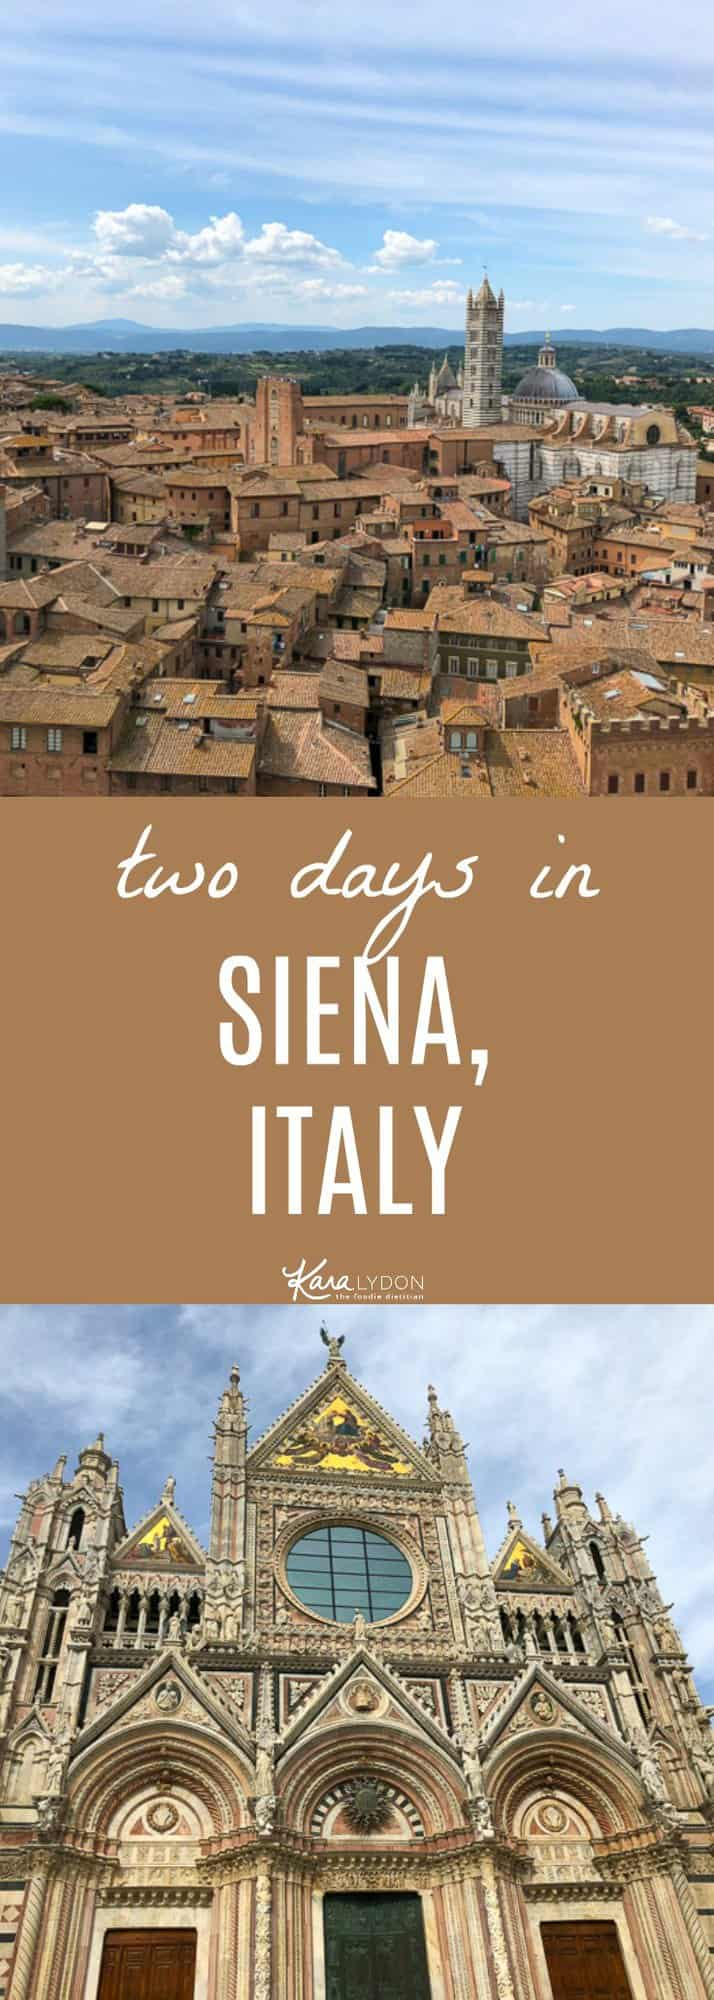 Recapping our two days in Siena, Italy. Where we ate, stayed and what we saw! #travel #italy #siena